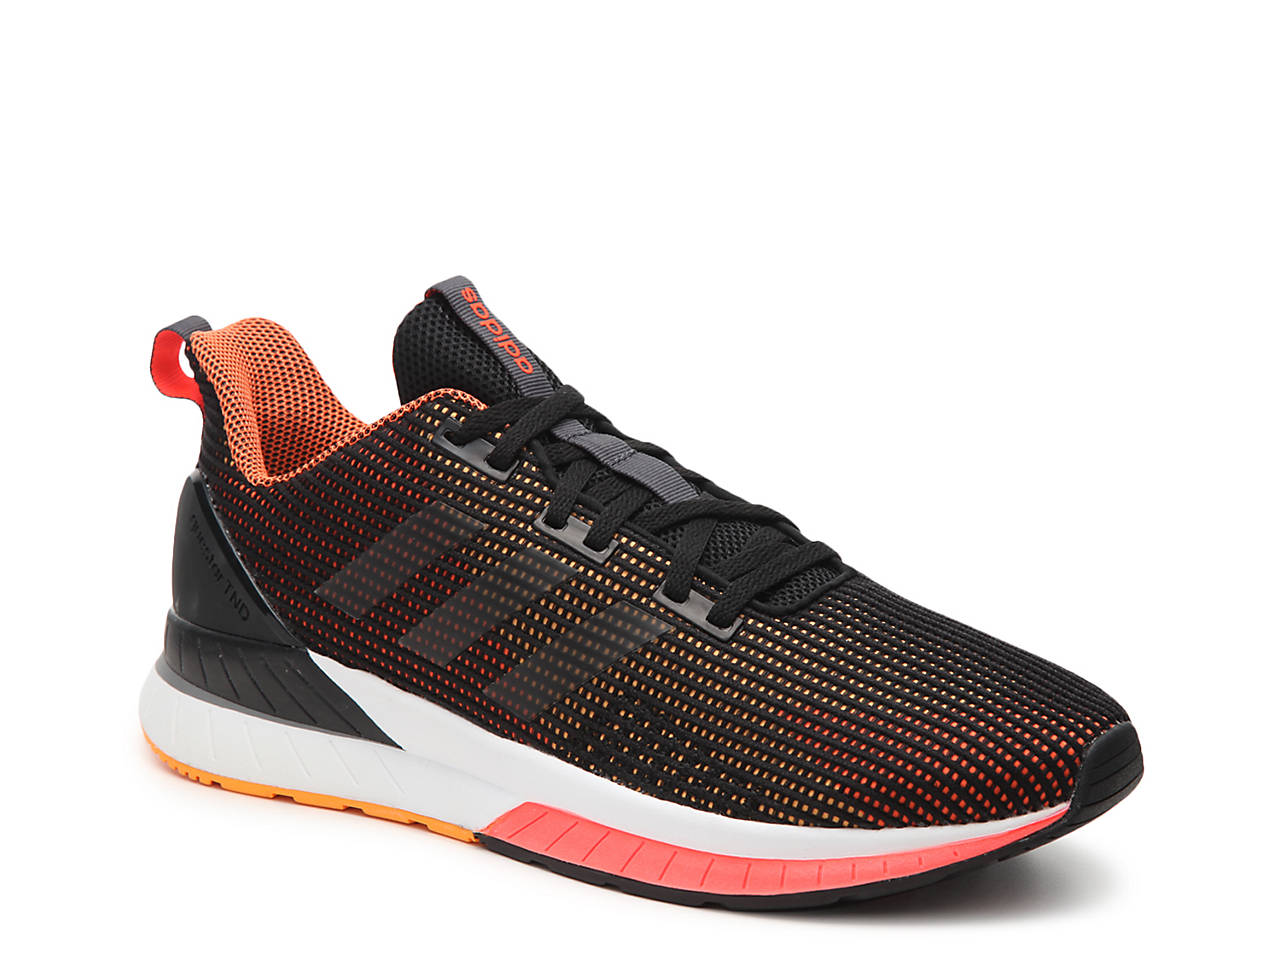 adidas Questar TND Men's ... Sneakers footaction for sale free shipping limited edition free shipping for nice best prices for sale Q9ByYZebC